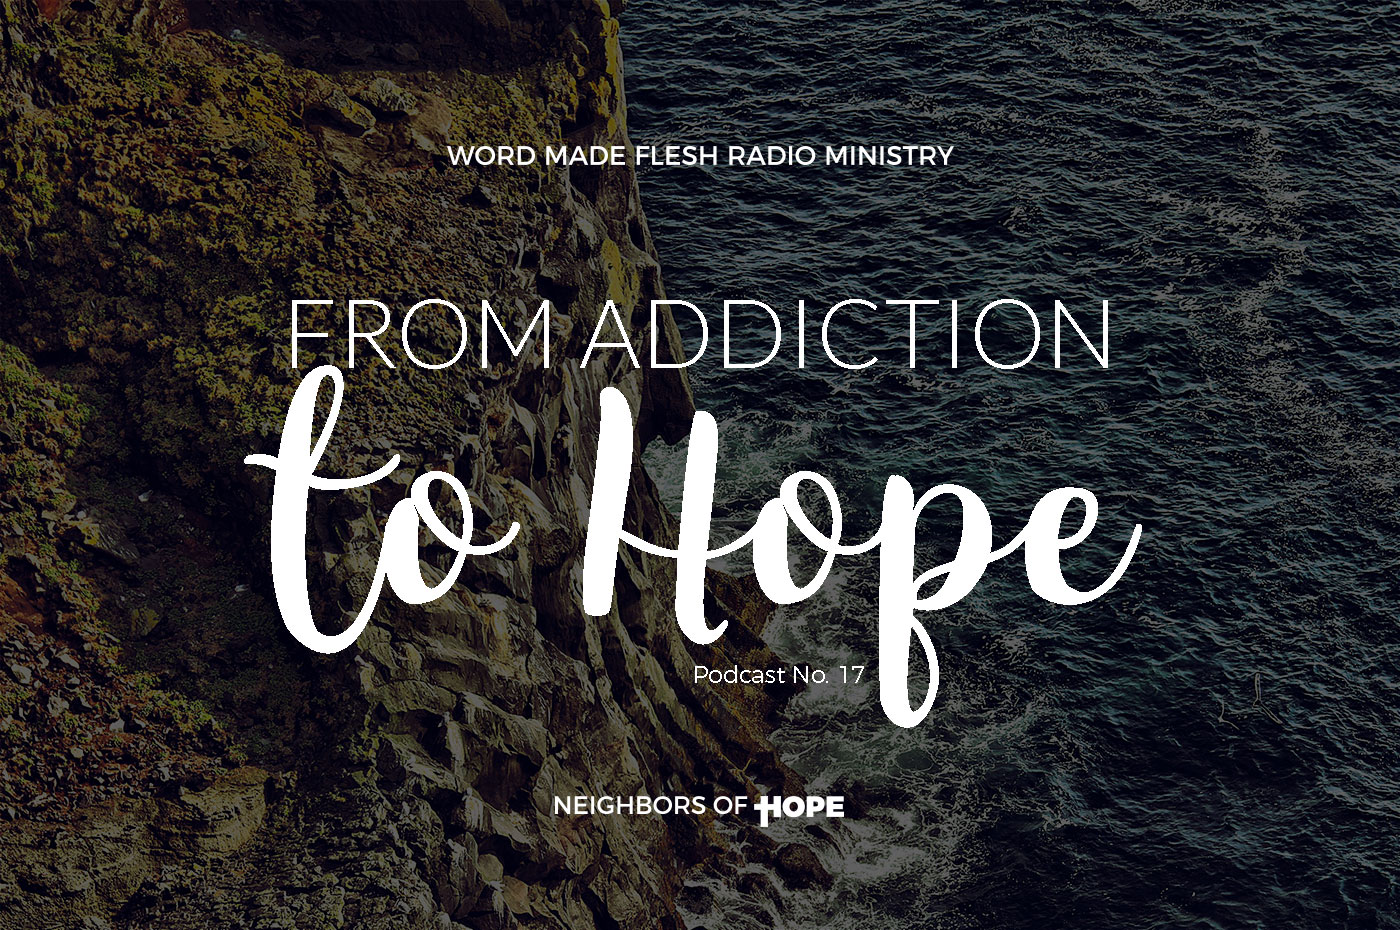 WMF No. 17: From Addiction to Hope